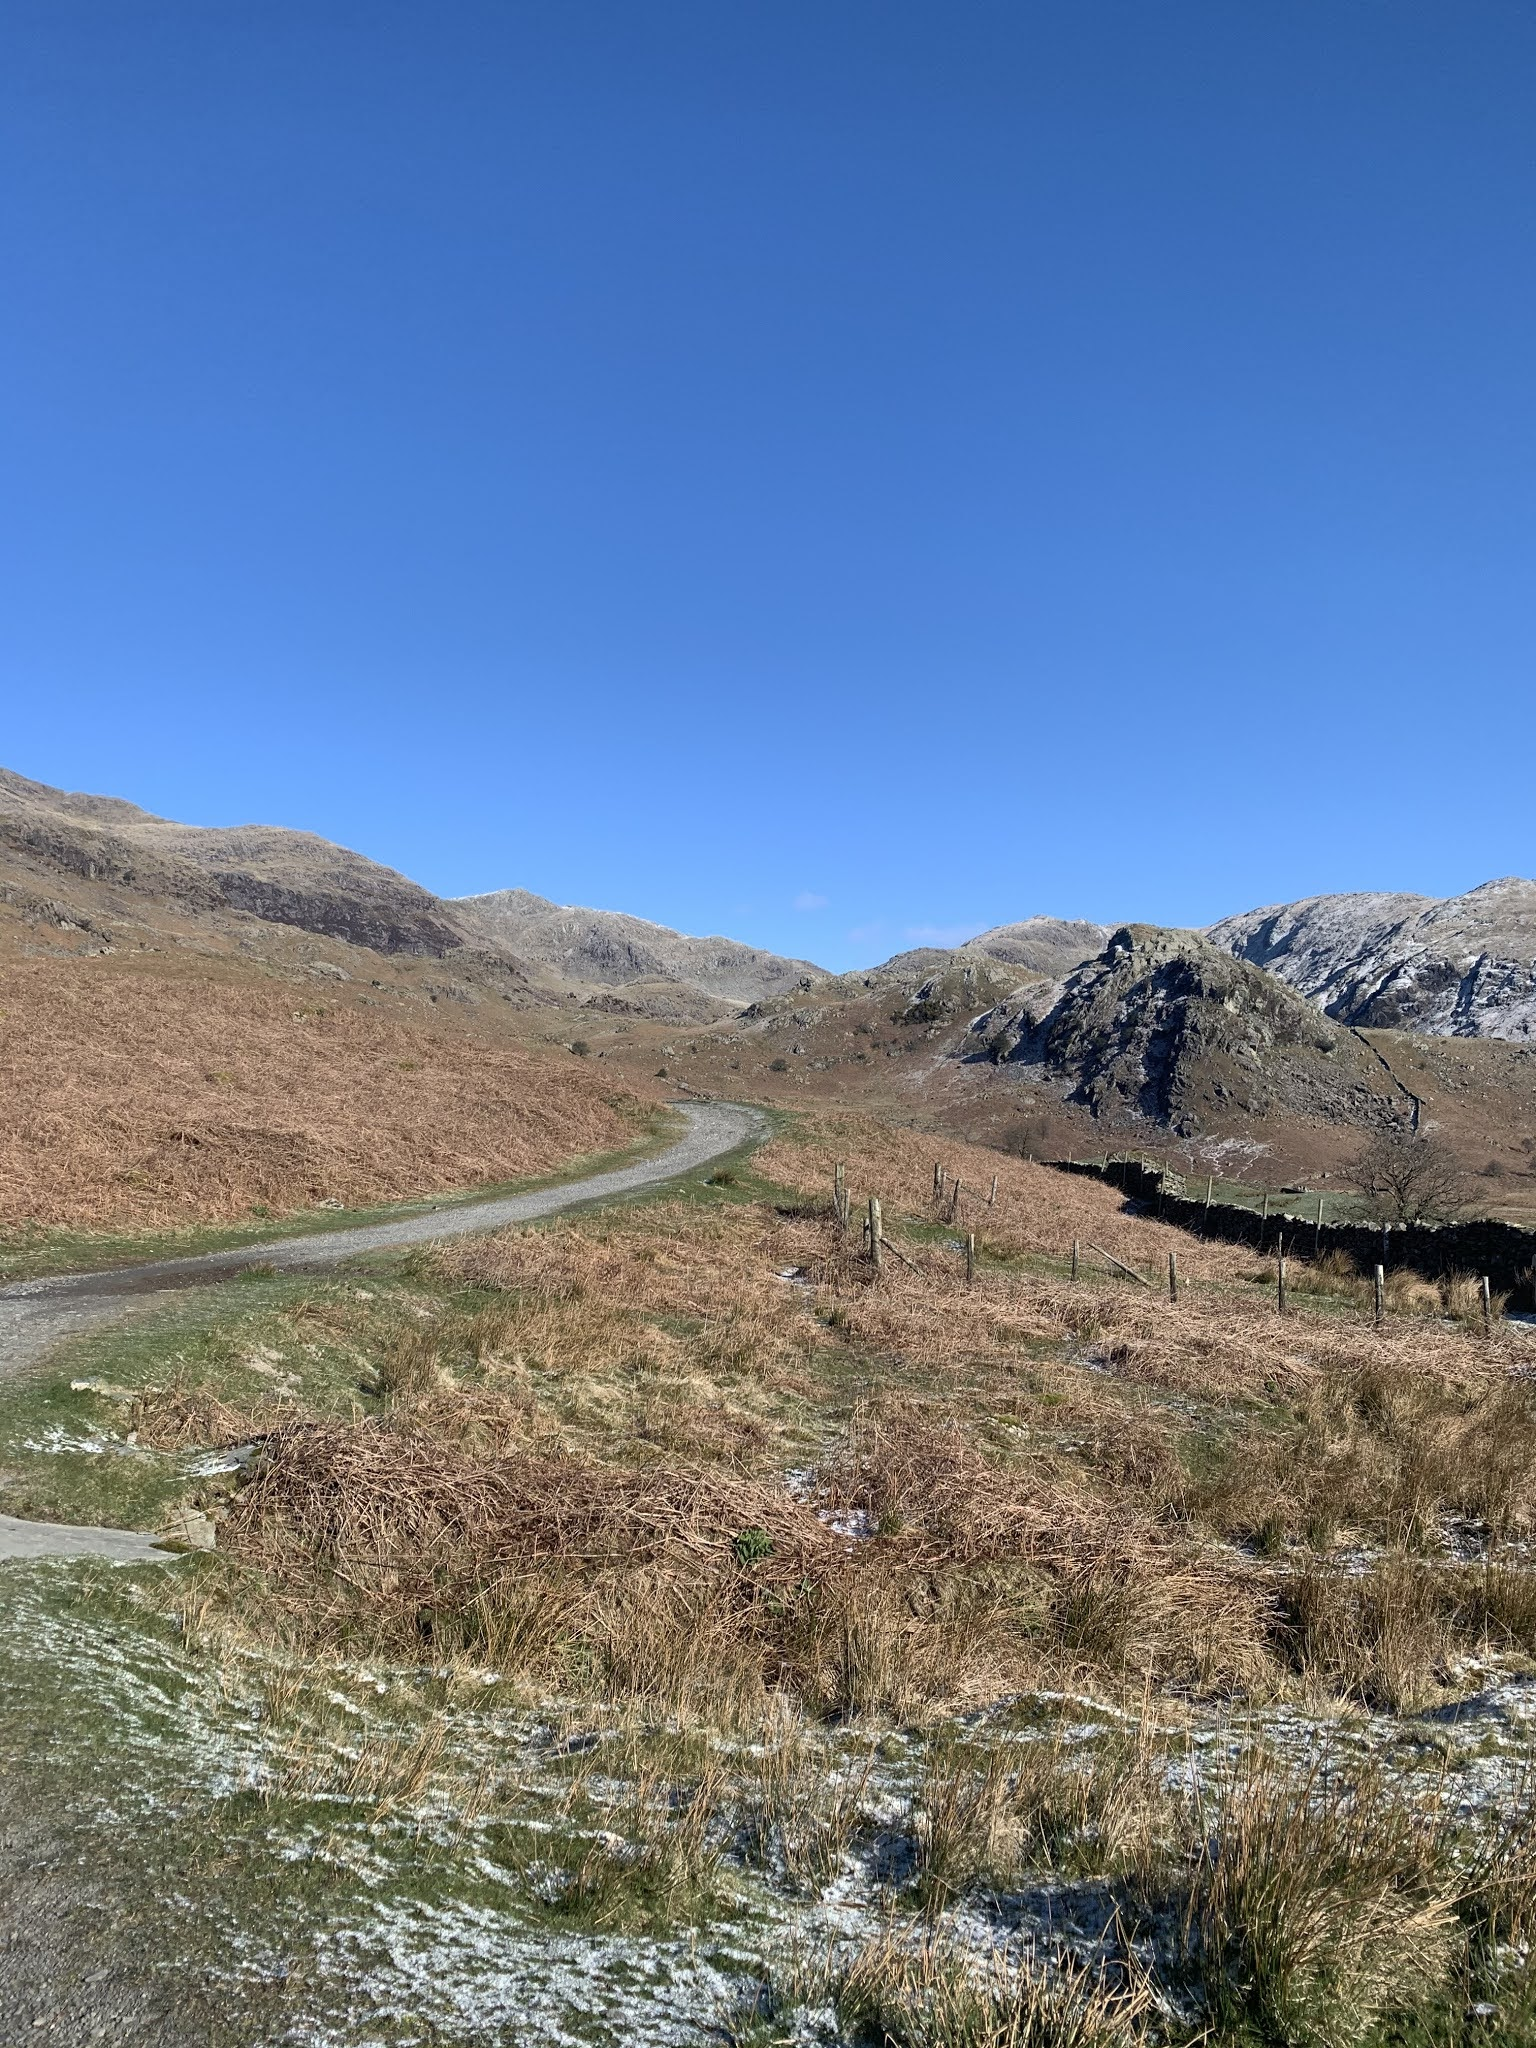 the gravel path at the beginning of the old man of coniston hike in the lake district